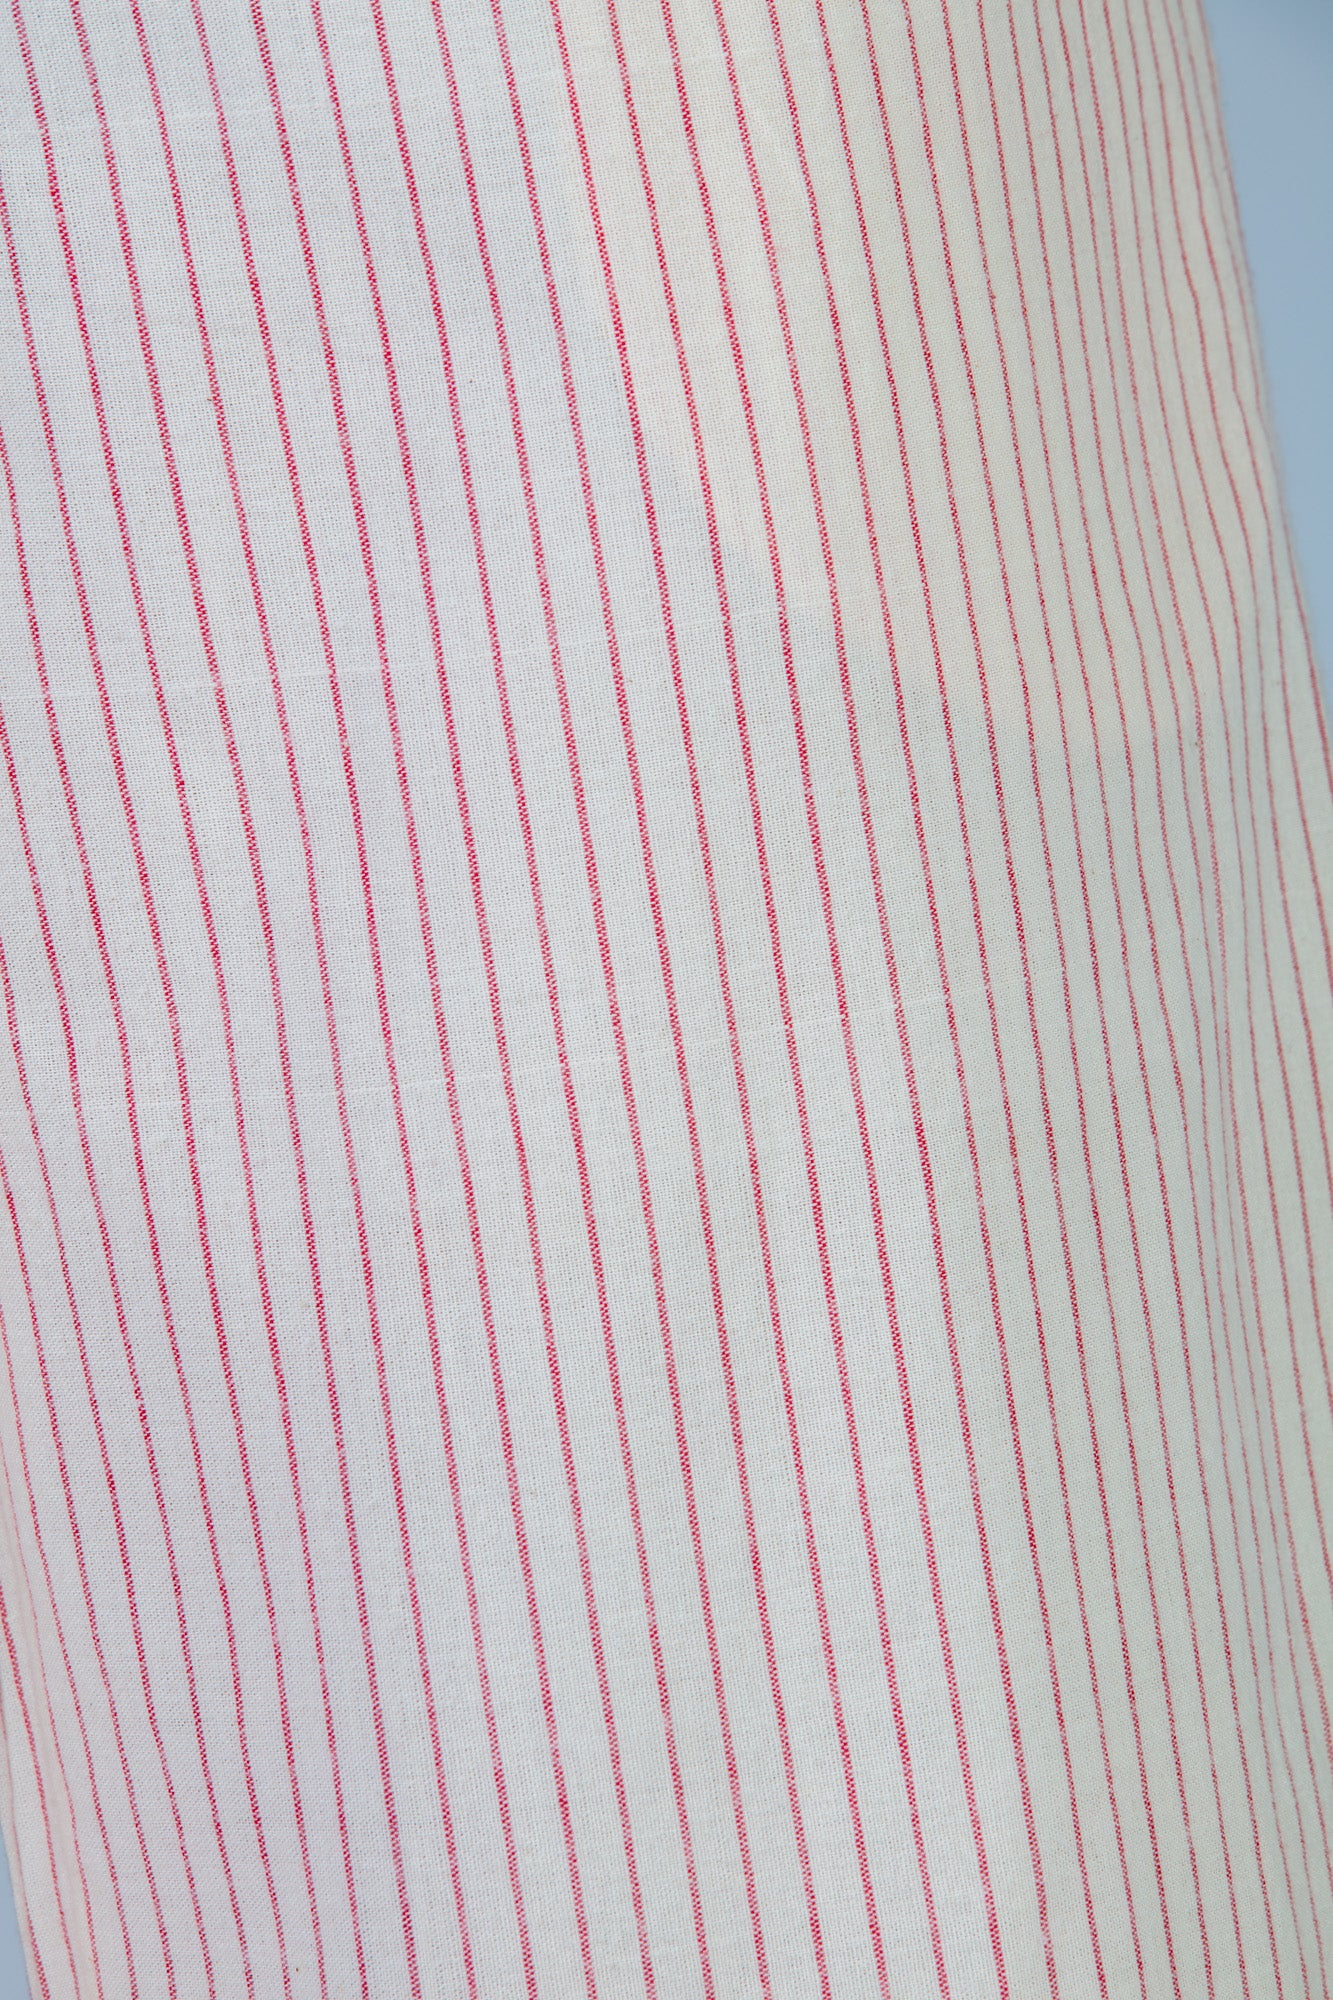 Red striped Organic cotton Pants - NILA - Upasana Design Studio